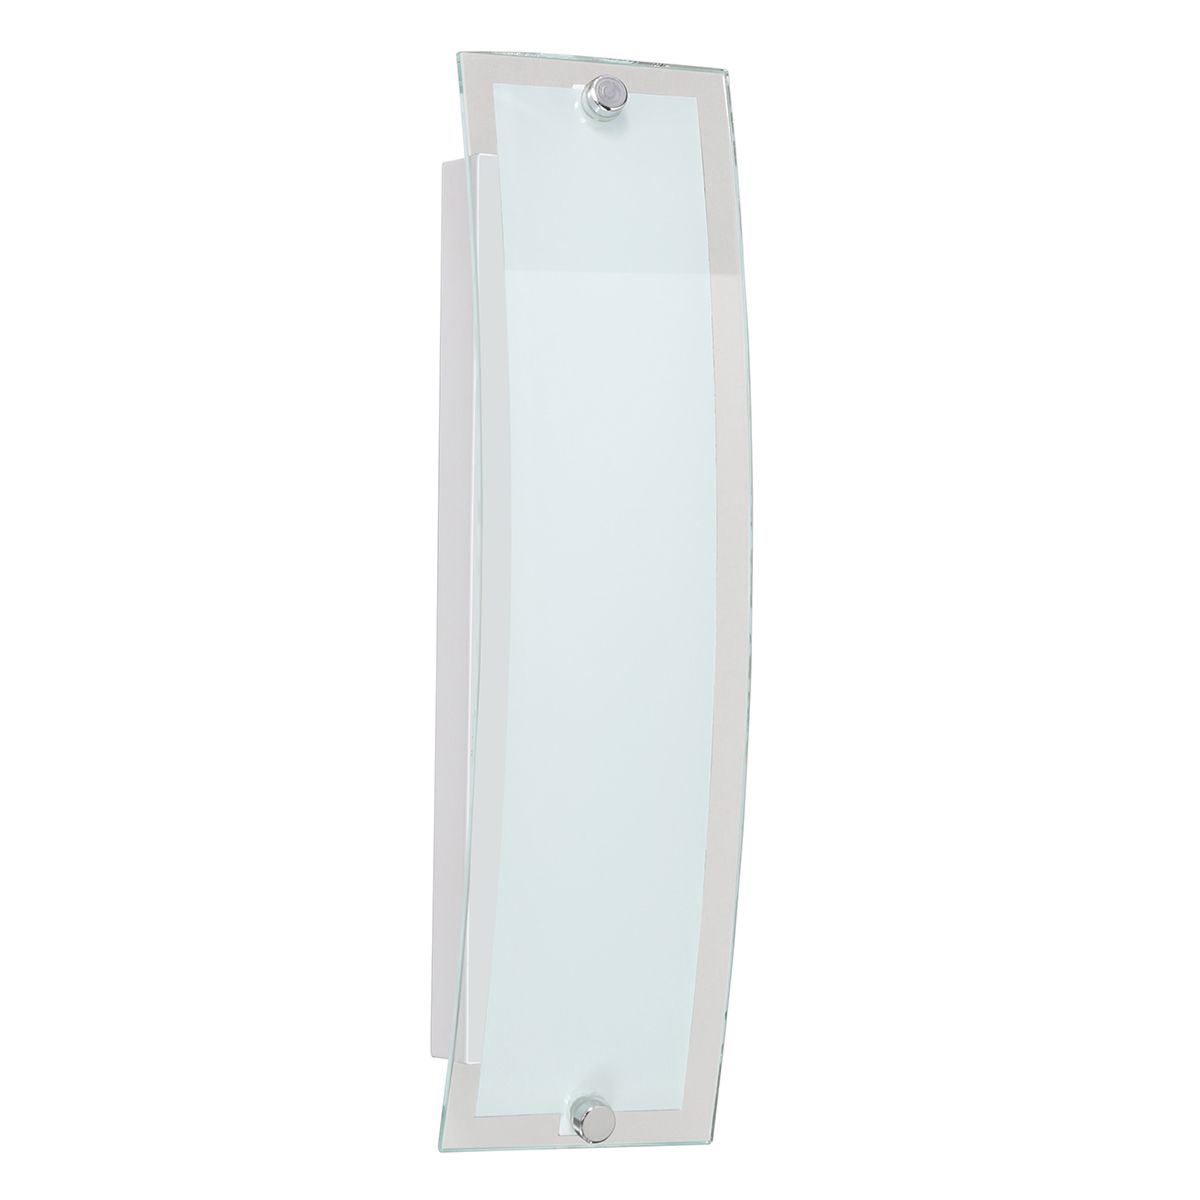 Action Lorenz Wall Lamp - Nickel Matt Finished with LED Bulb